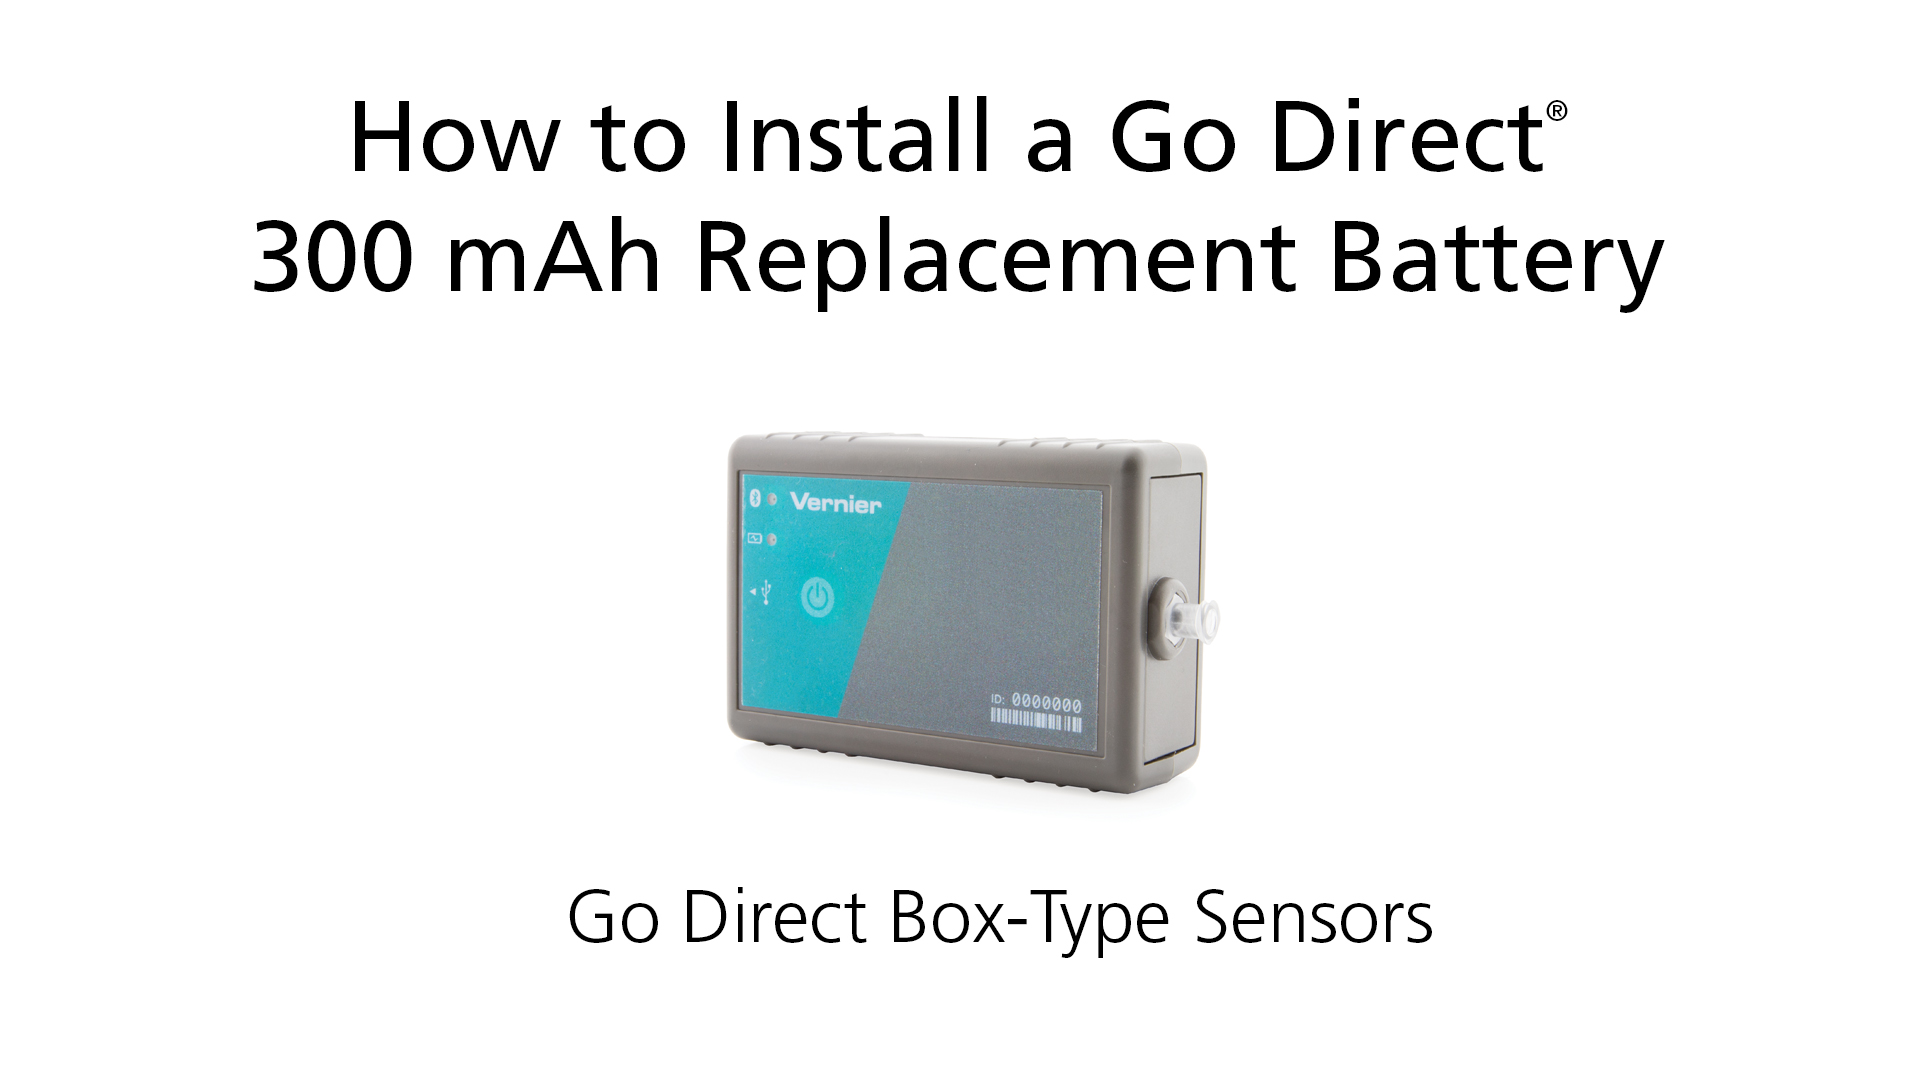 How to Install a Go Direct® 300 mAh Replacement Battery in Box-Type Sensors